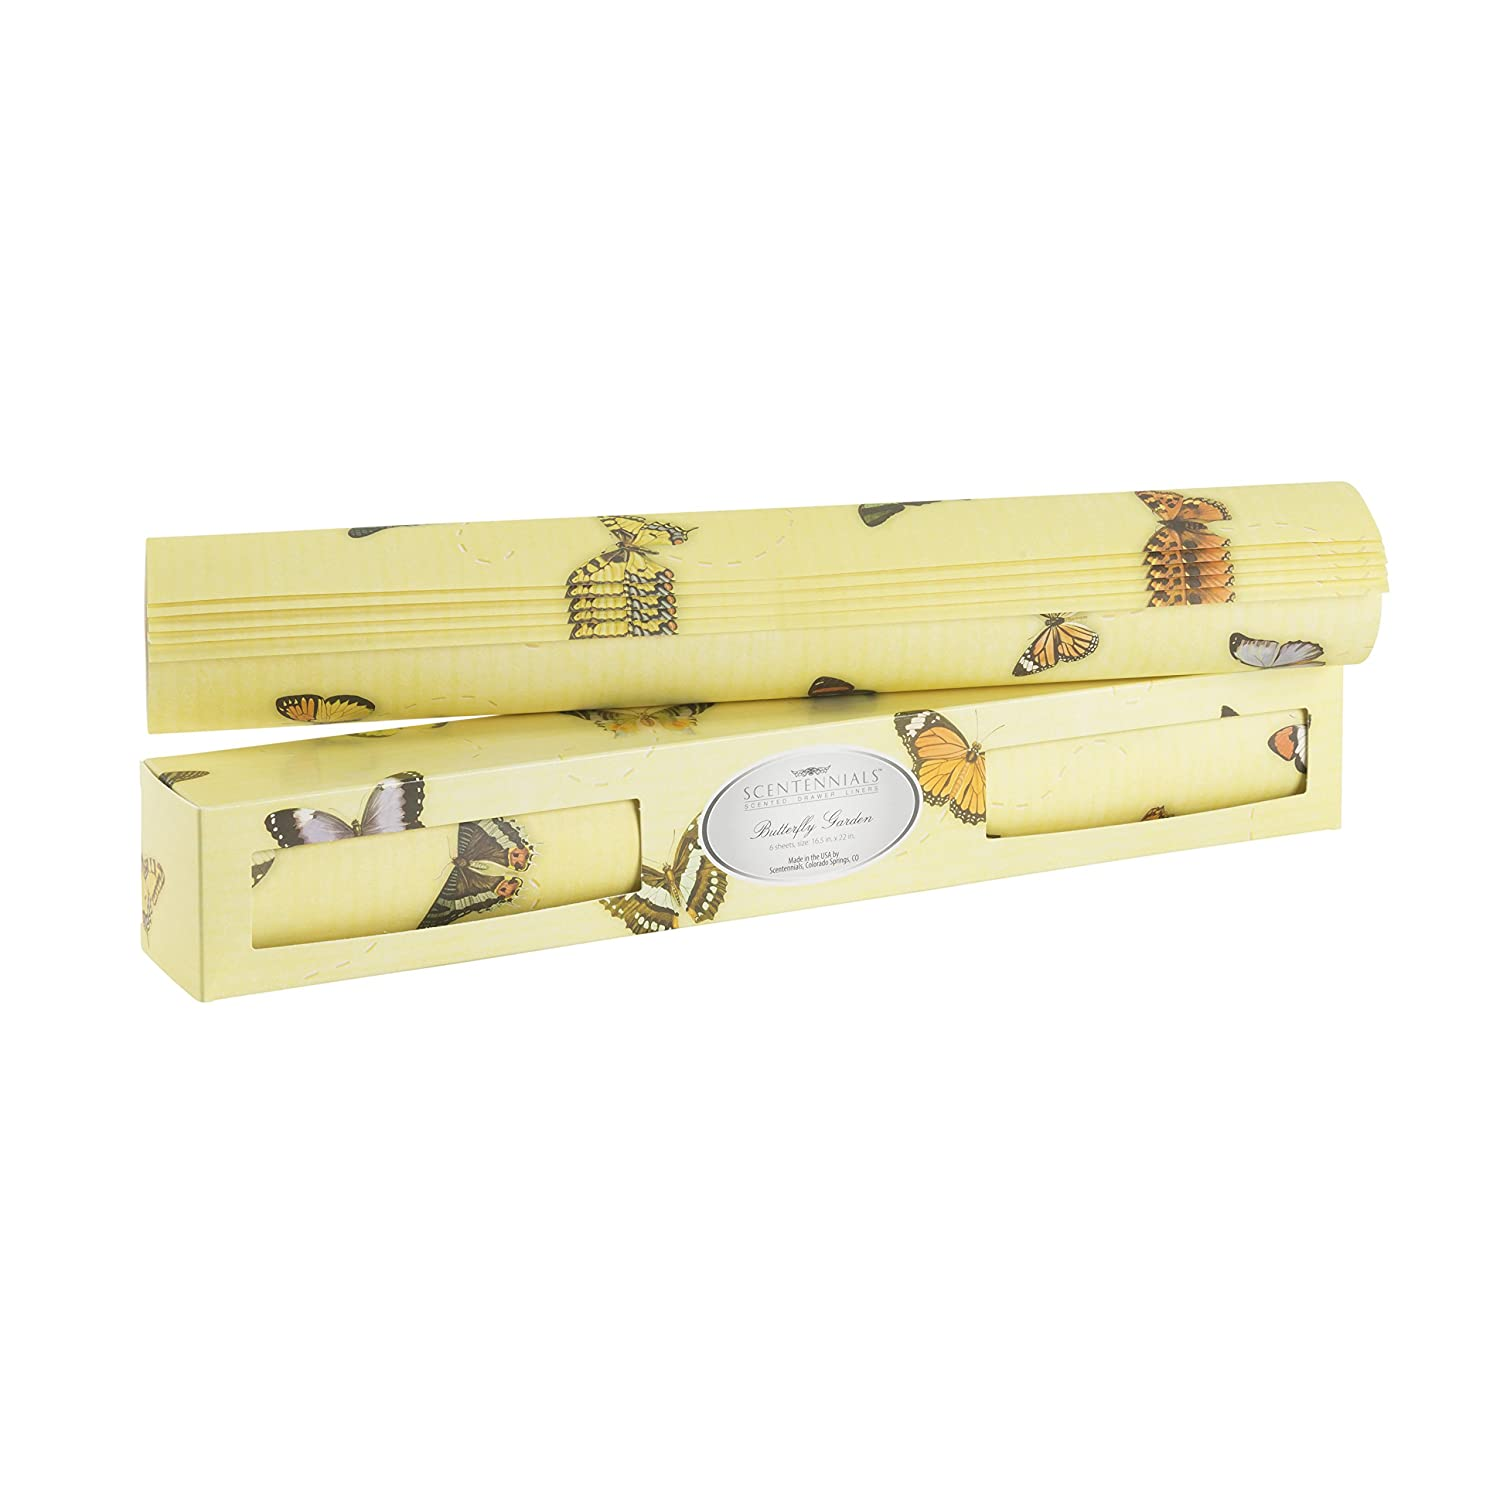 Butterfly Garden Scented Drawer Liner from Scentennials Scentennials Products Inc Premium